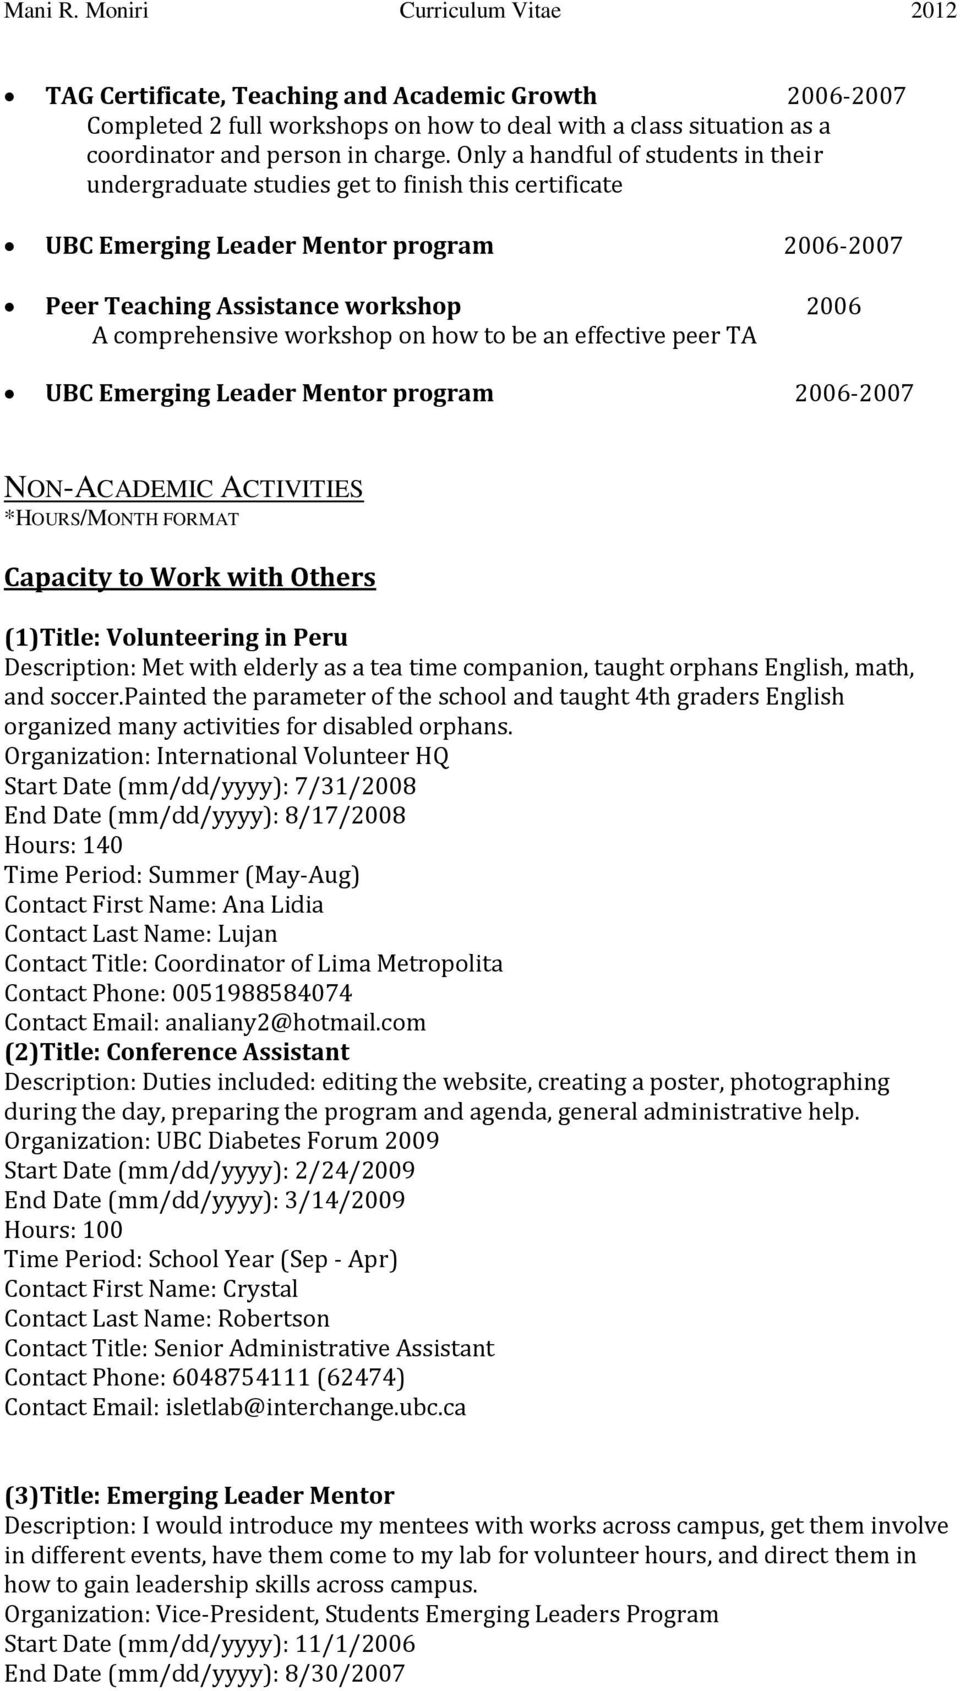 on how to be an effective peer TA UBC Emerging Leader Mentor program 2006-2007 NON-ACADEMIC ACTIVITIES *HOURS/MONTH FORMAT Capacity to Work with Others (1)Title: Volunteering in Peru Description: Met